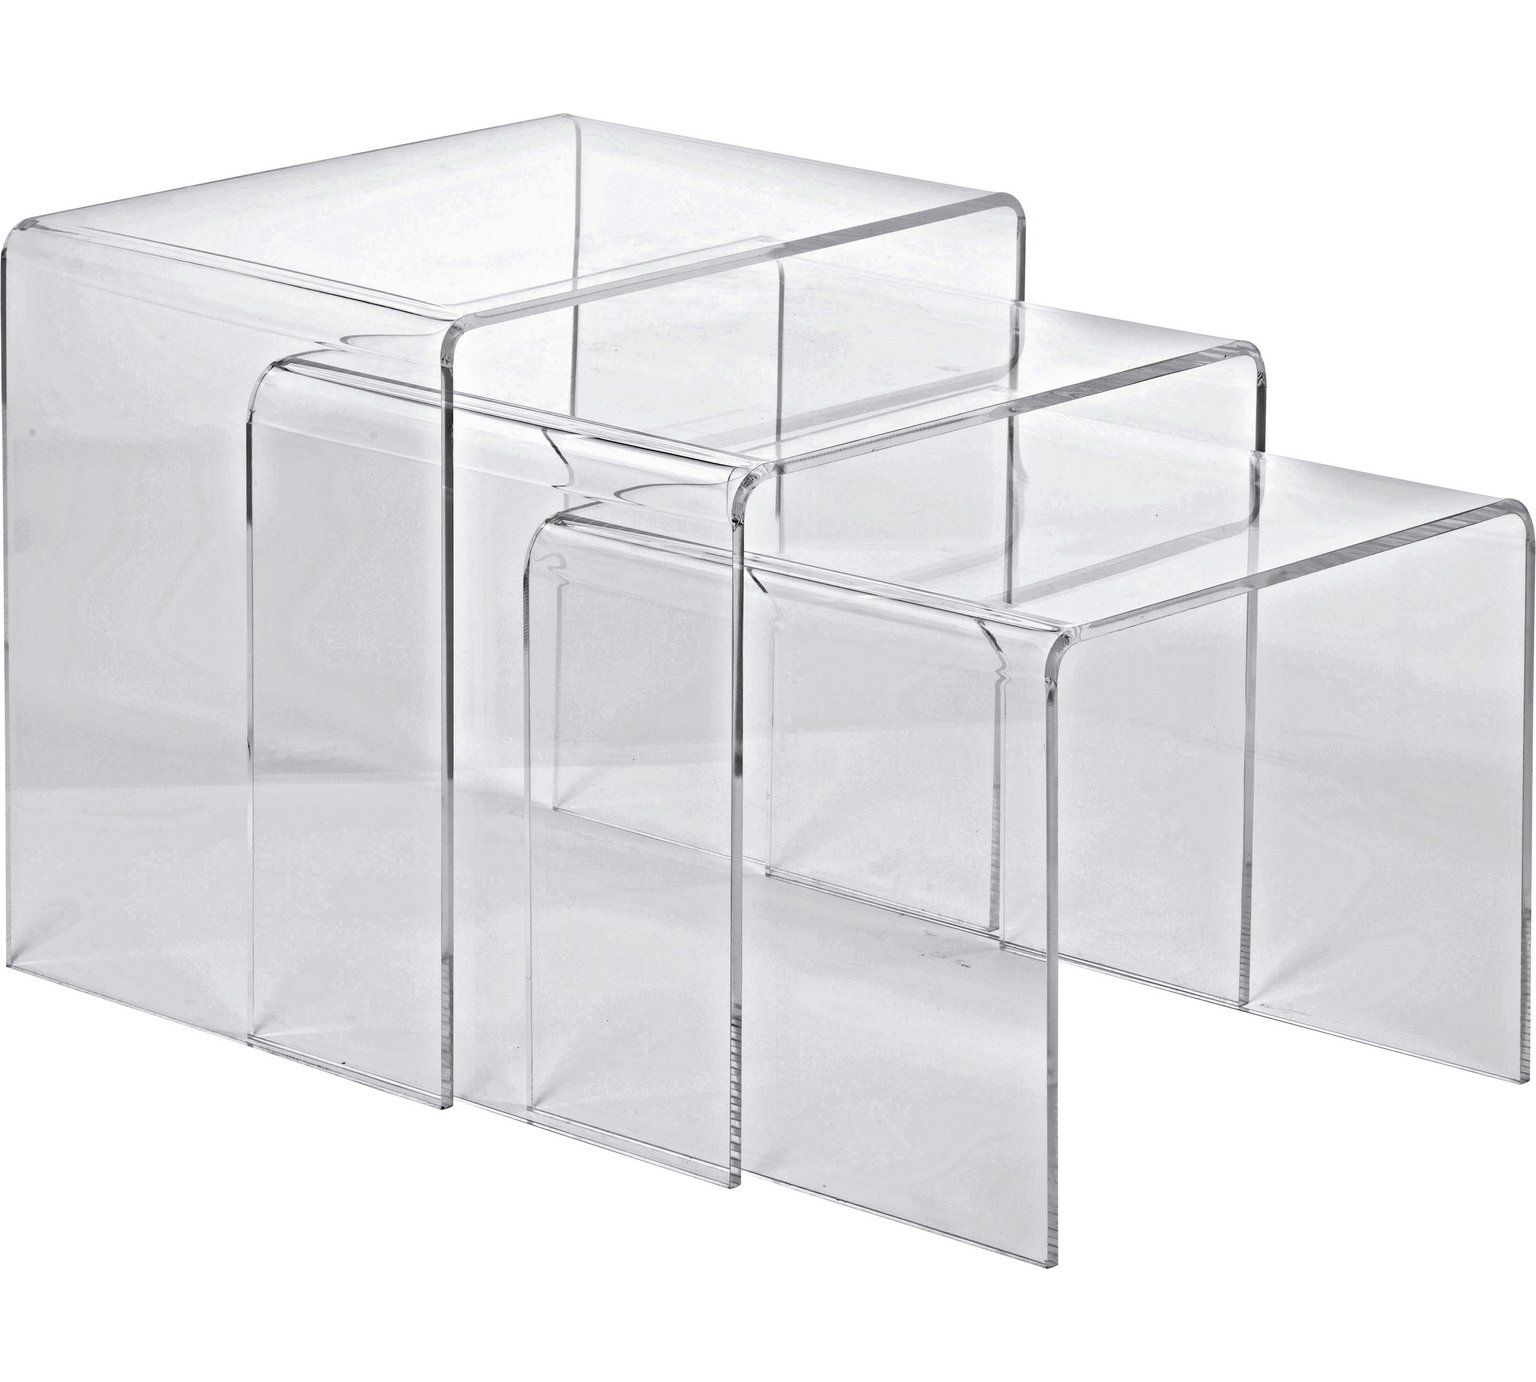 Buy Hygena Mistral Nest Of 3 Tables Clear Acrylic At Argos Co Uk Visit Argos Co Uk To Shop Online For C Argos Home Living Room Furniture Tables Coffee Table [ 1382 x 1536 Pixel ]